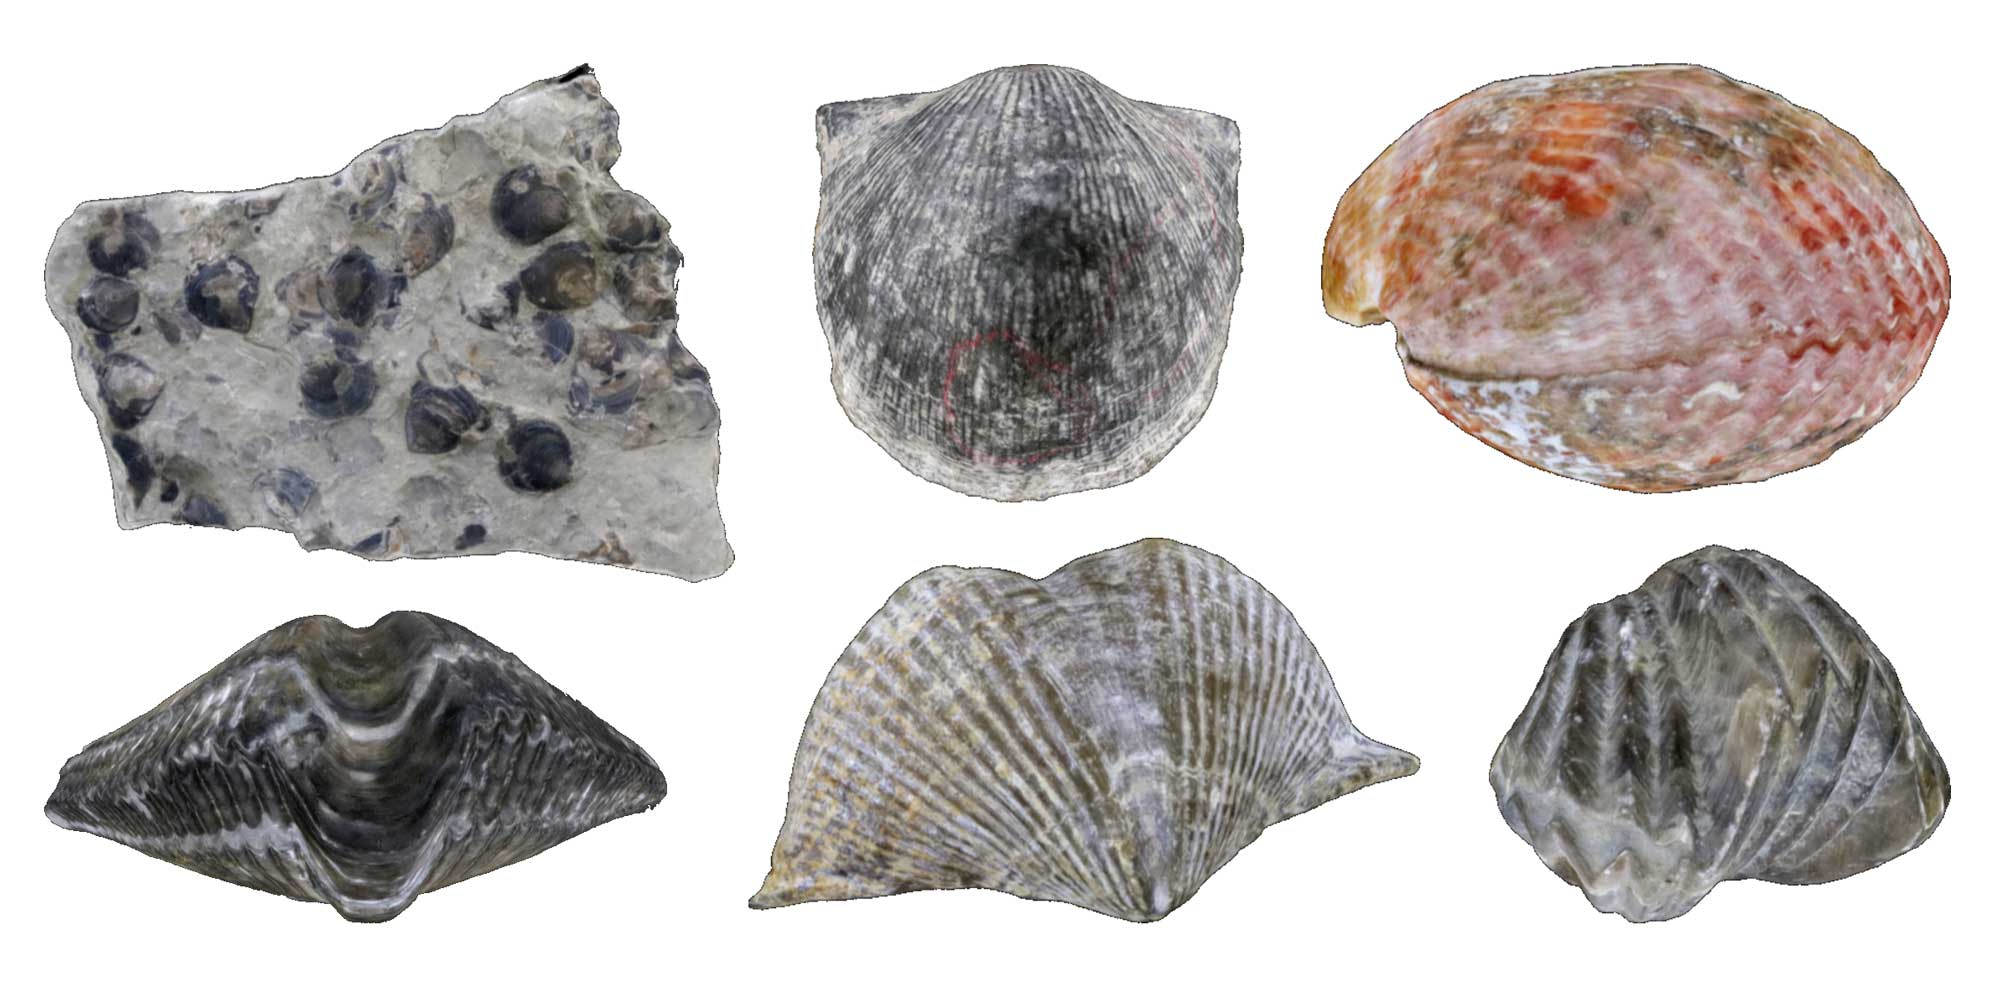 Images of fossil and modern brachiopods.